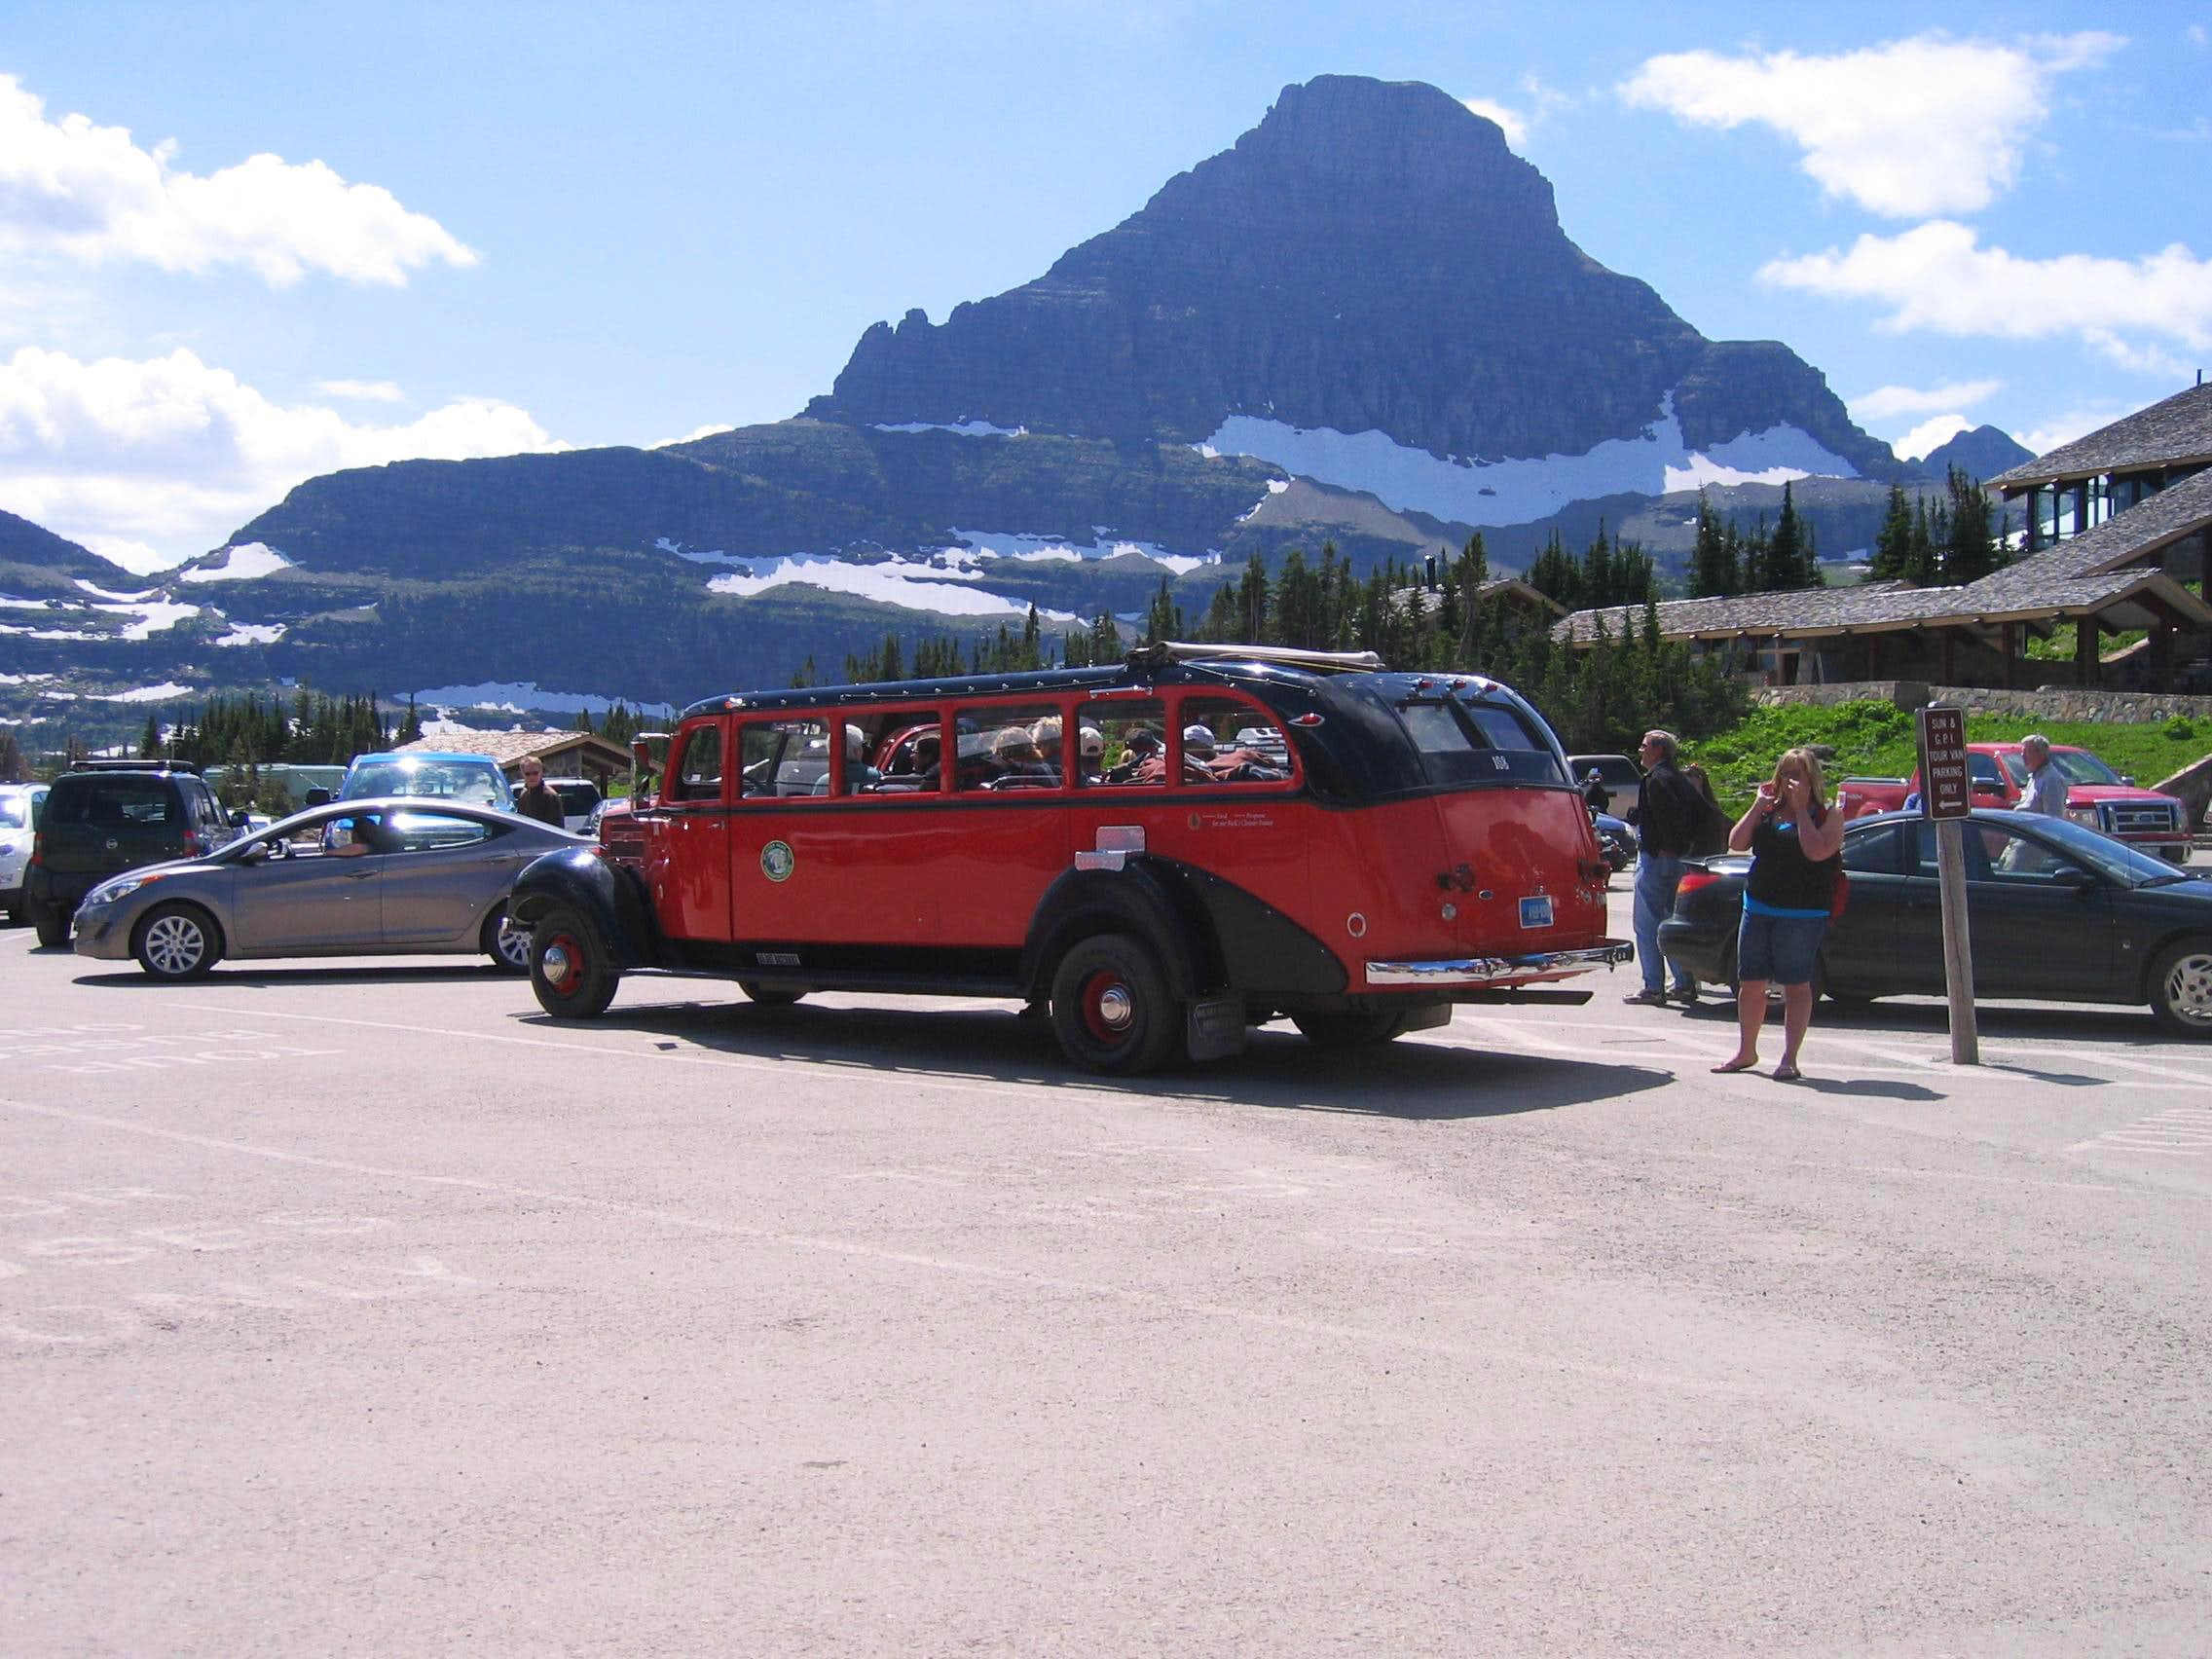 2011 Trip to Glacier National Park